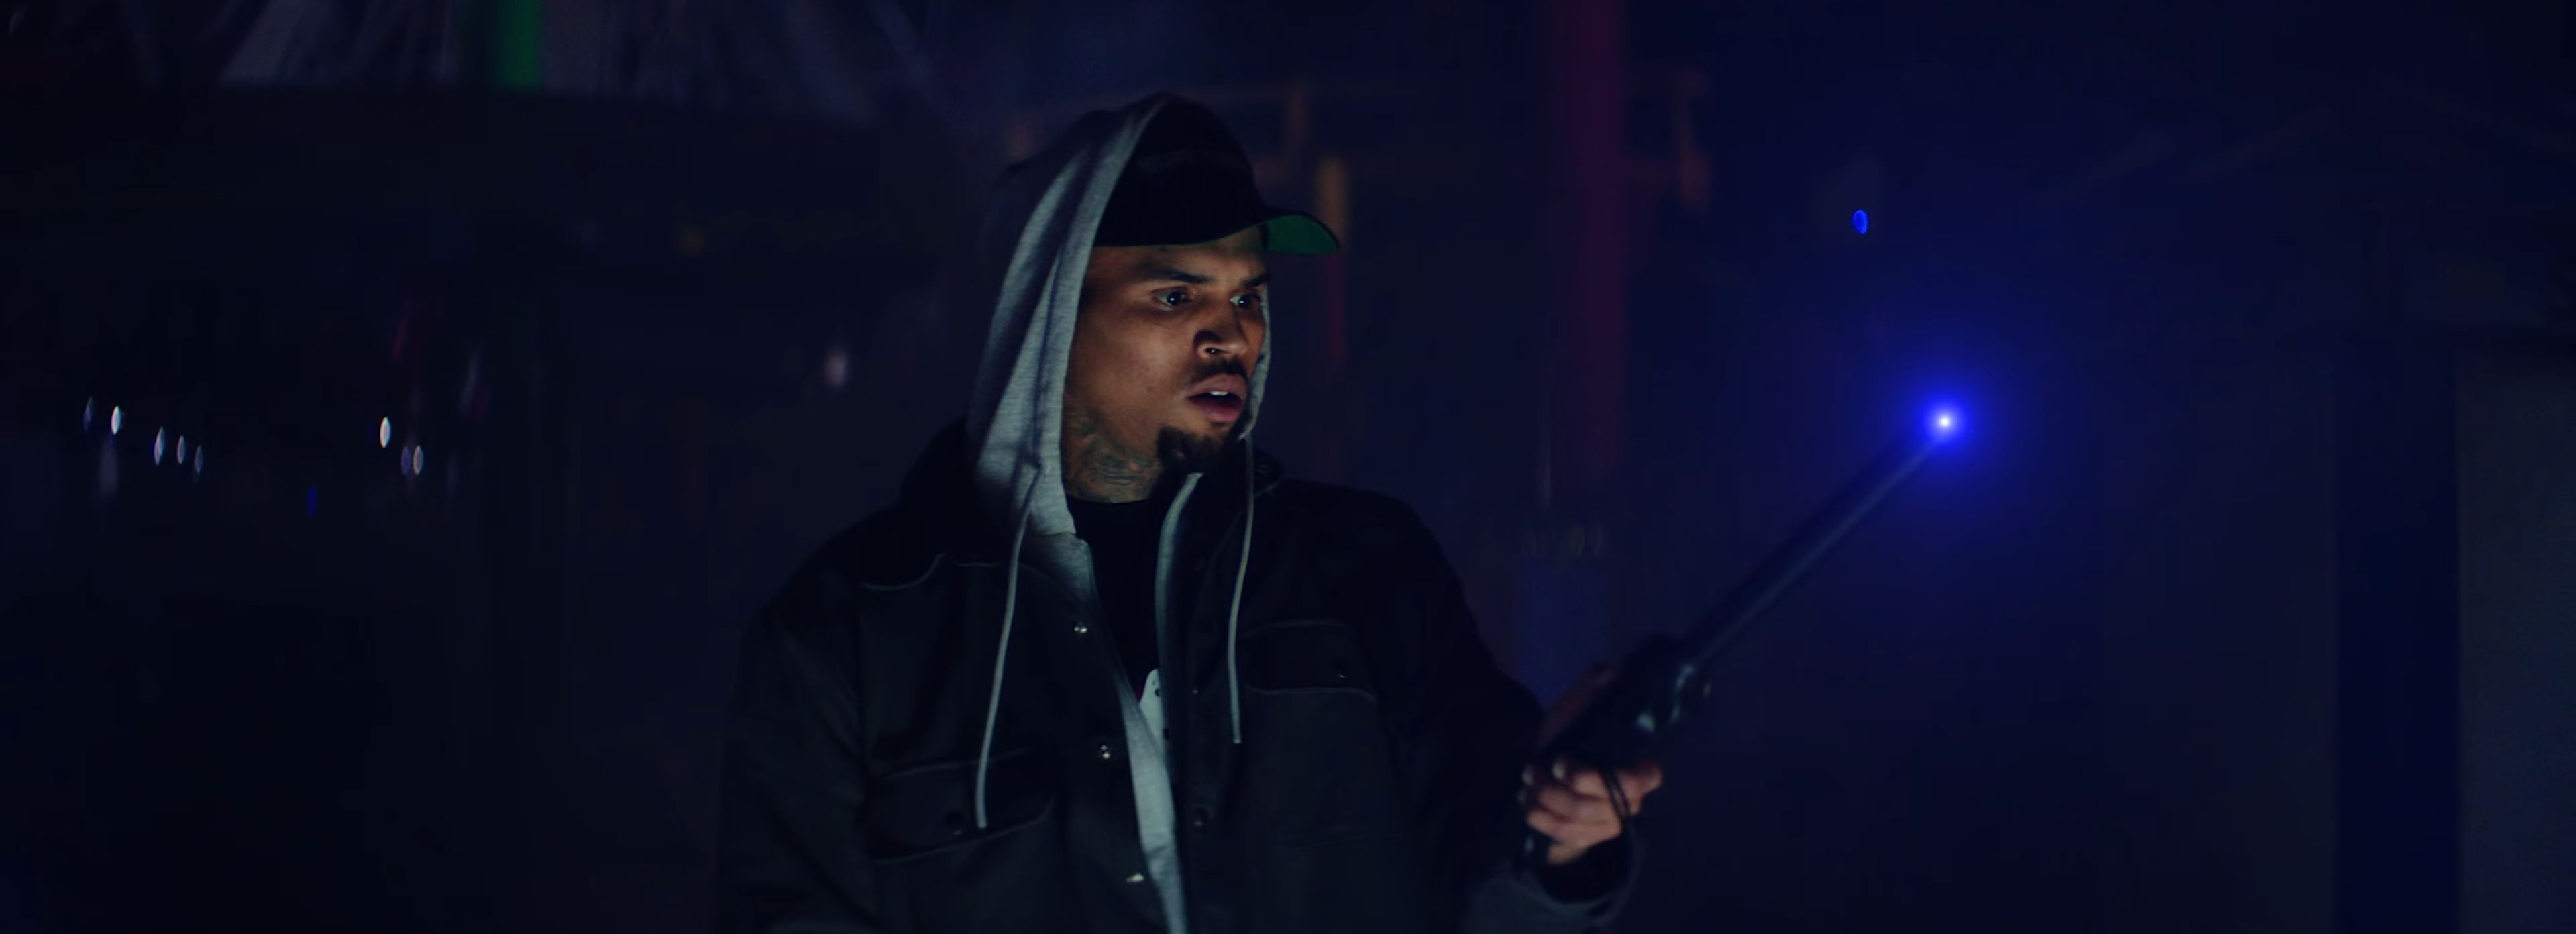 0052 Undecided by Chris Brown